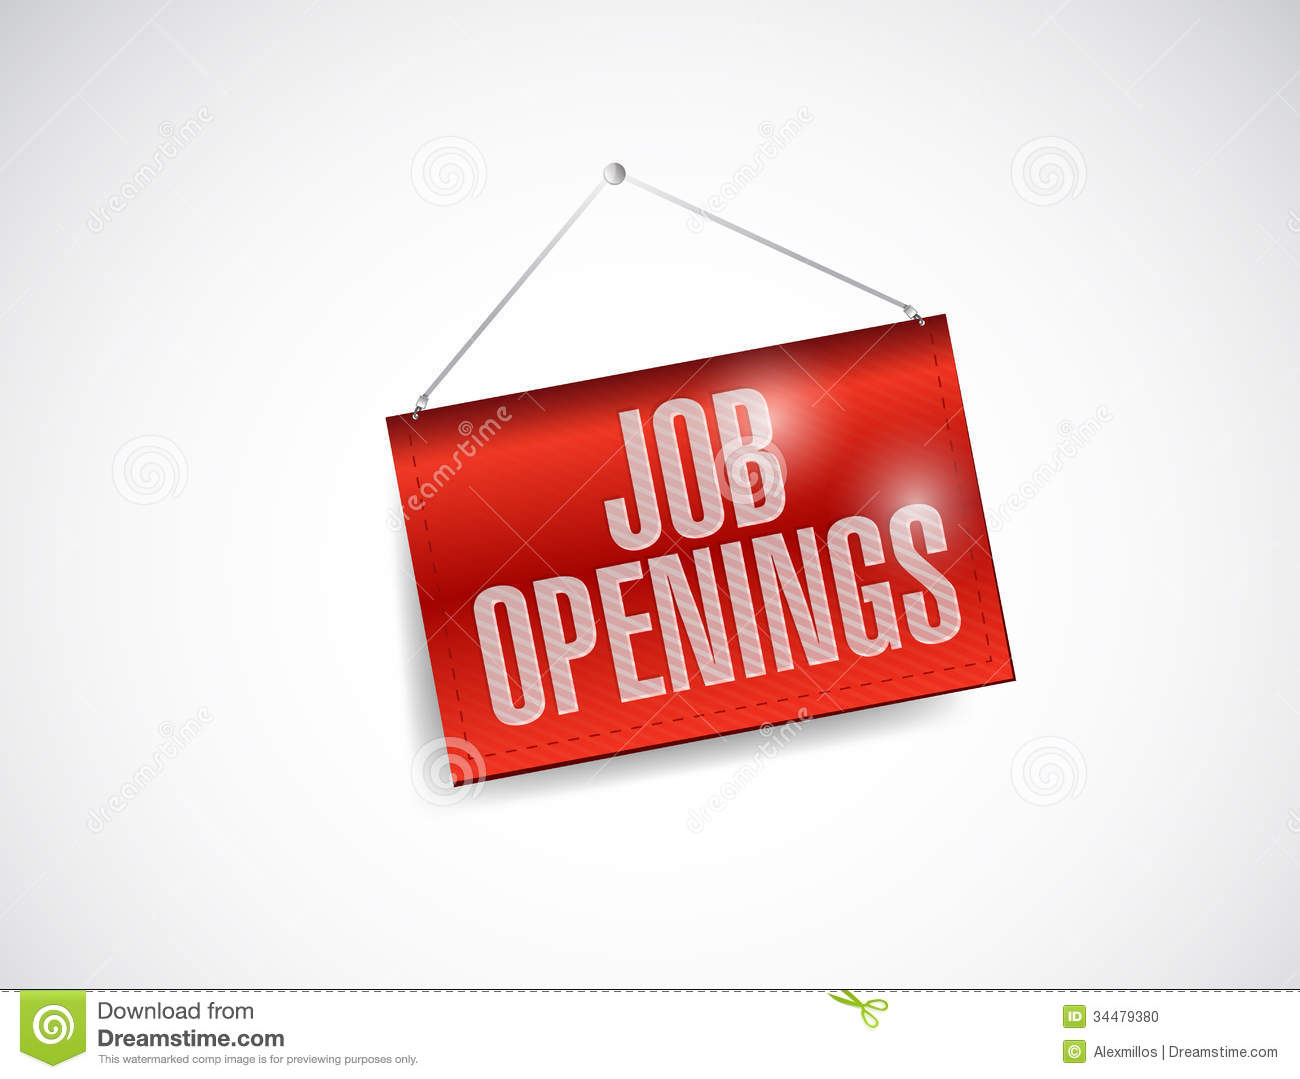 Job Openings: Job Openings Fabric Textured Hanging Banner Stock Photo